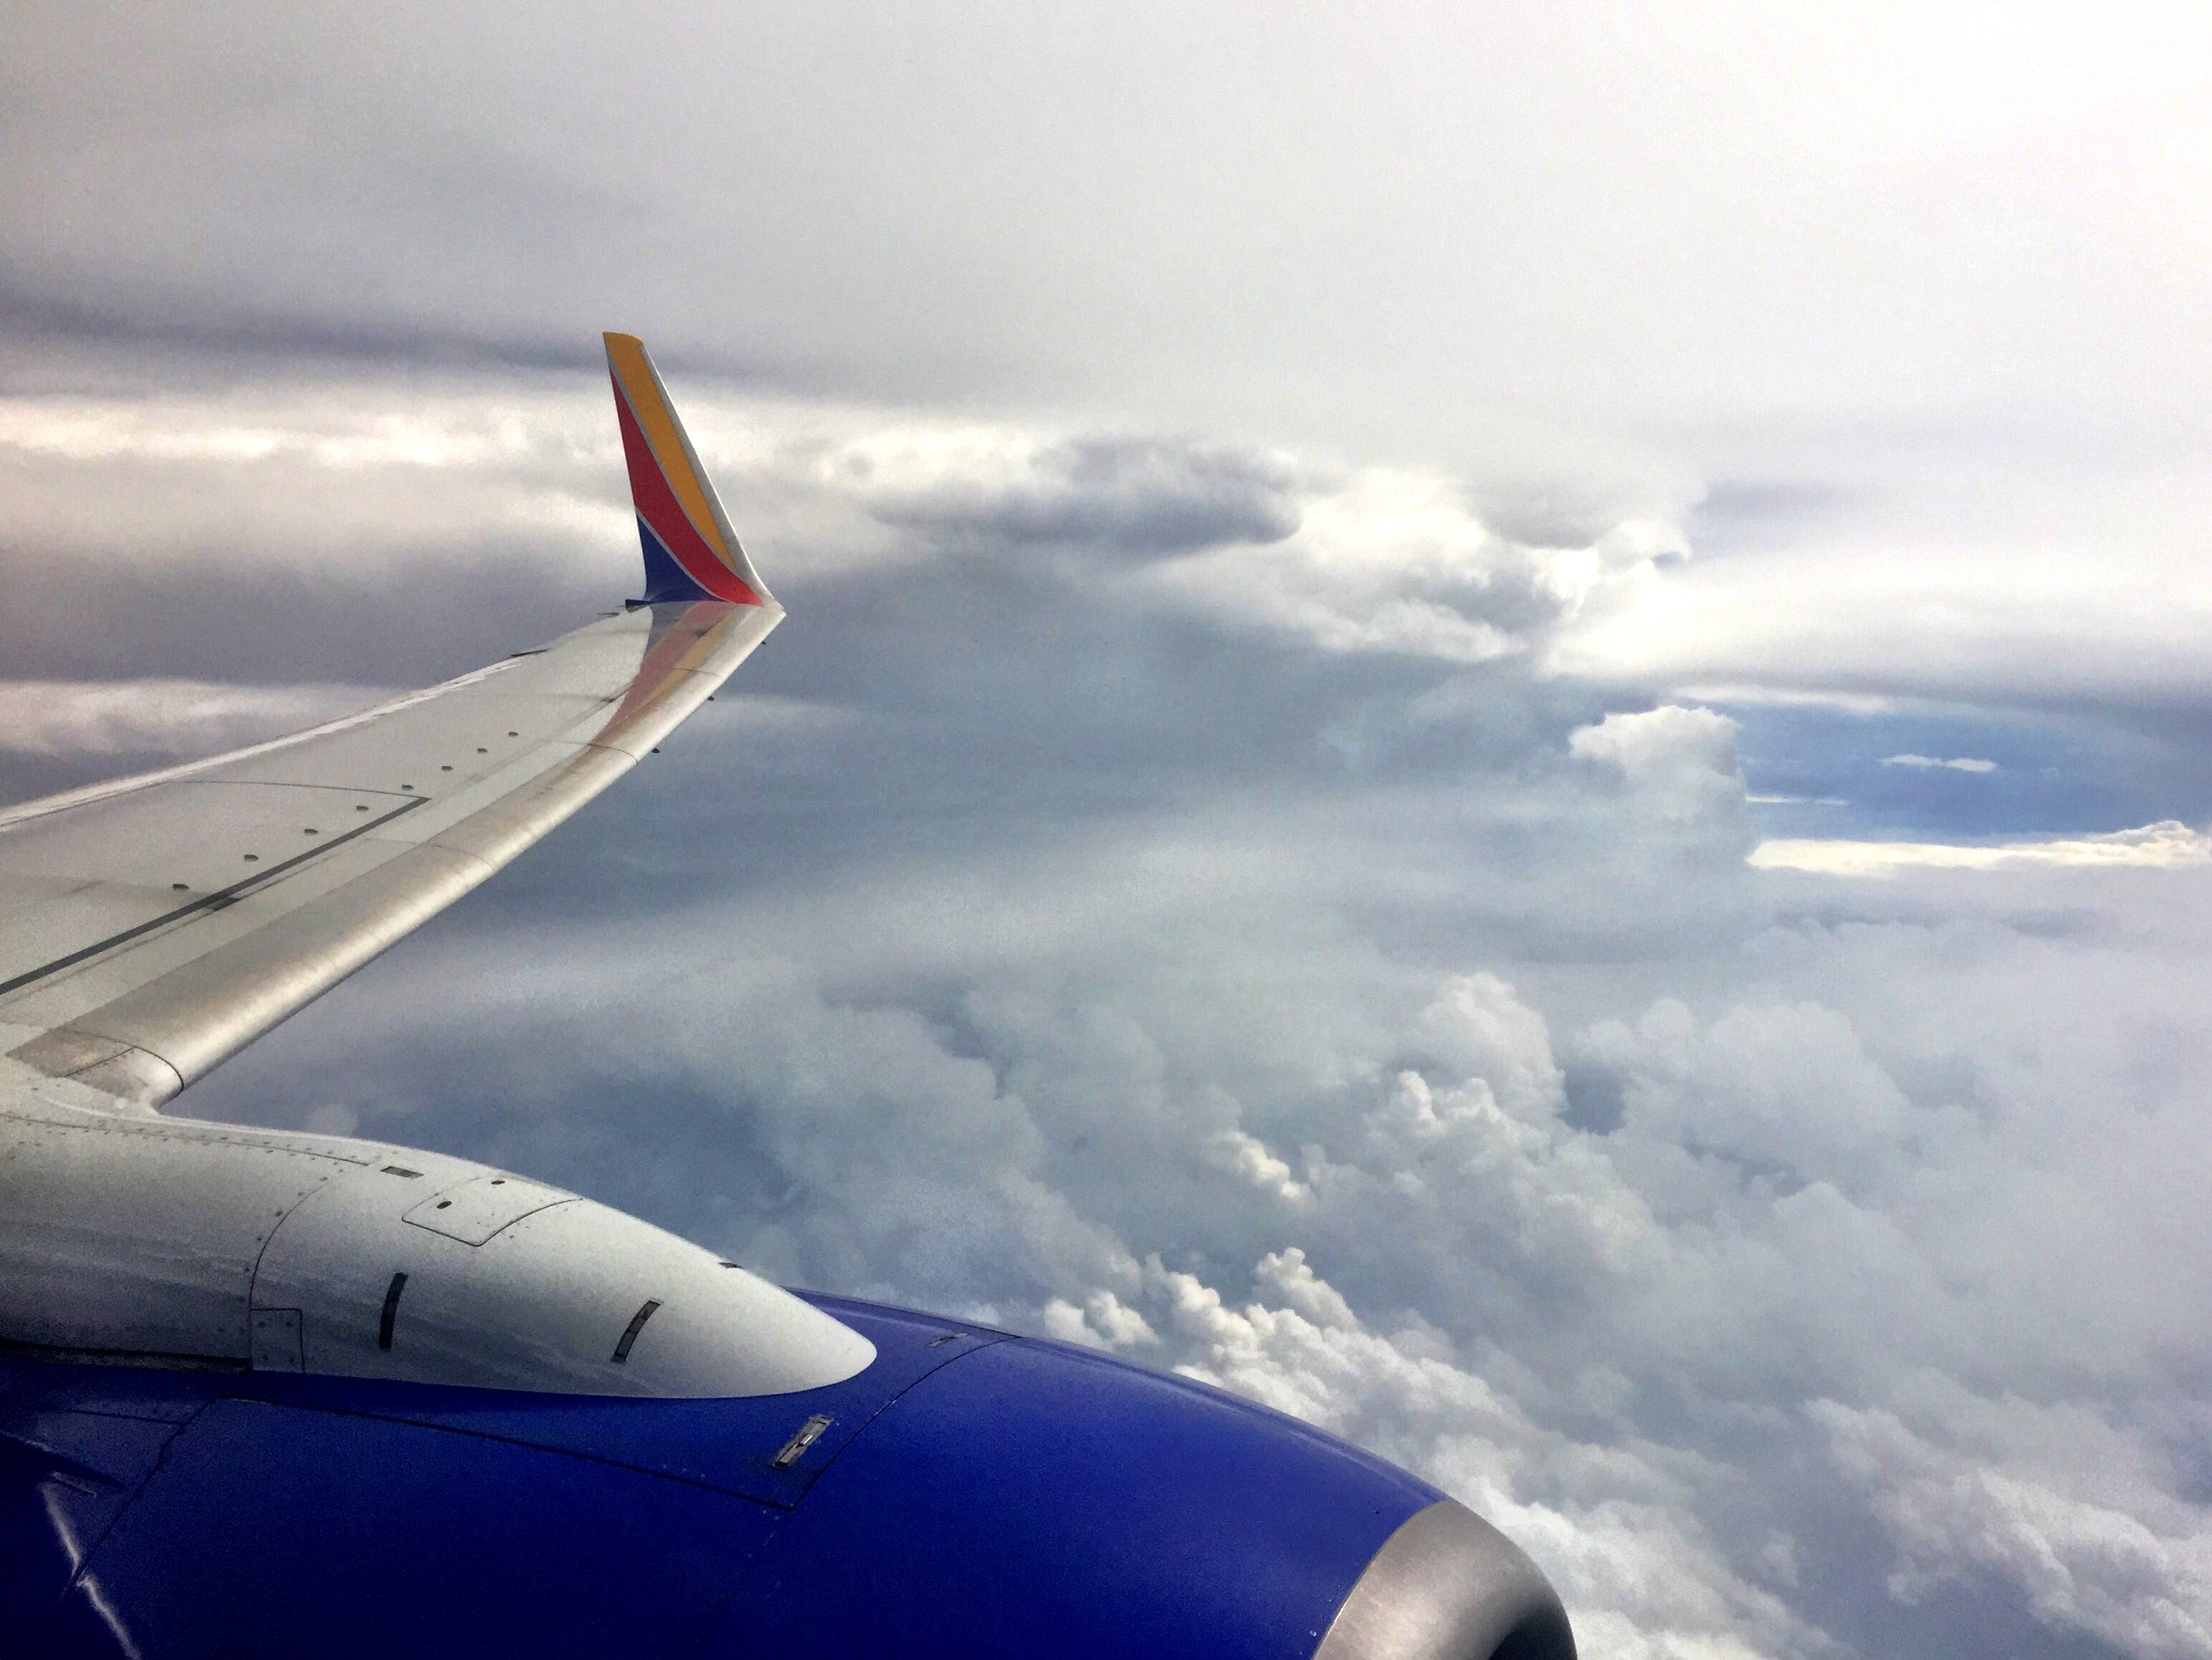 Free stock photo of sky, airplane